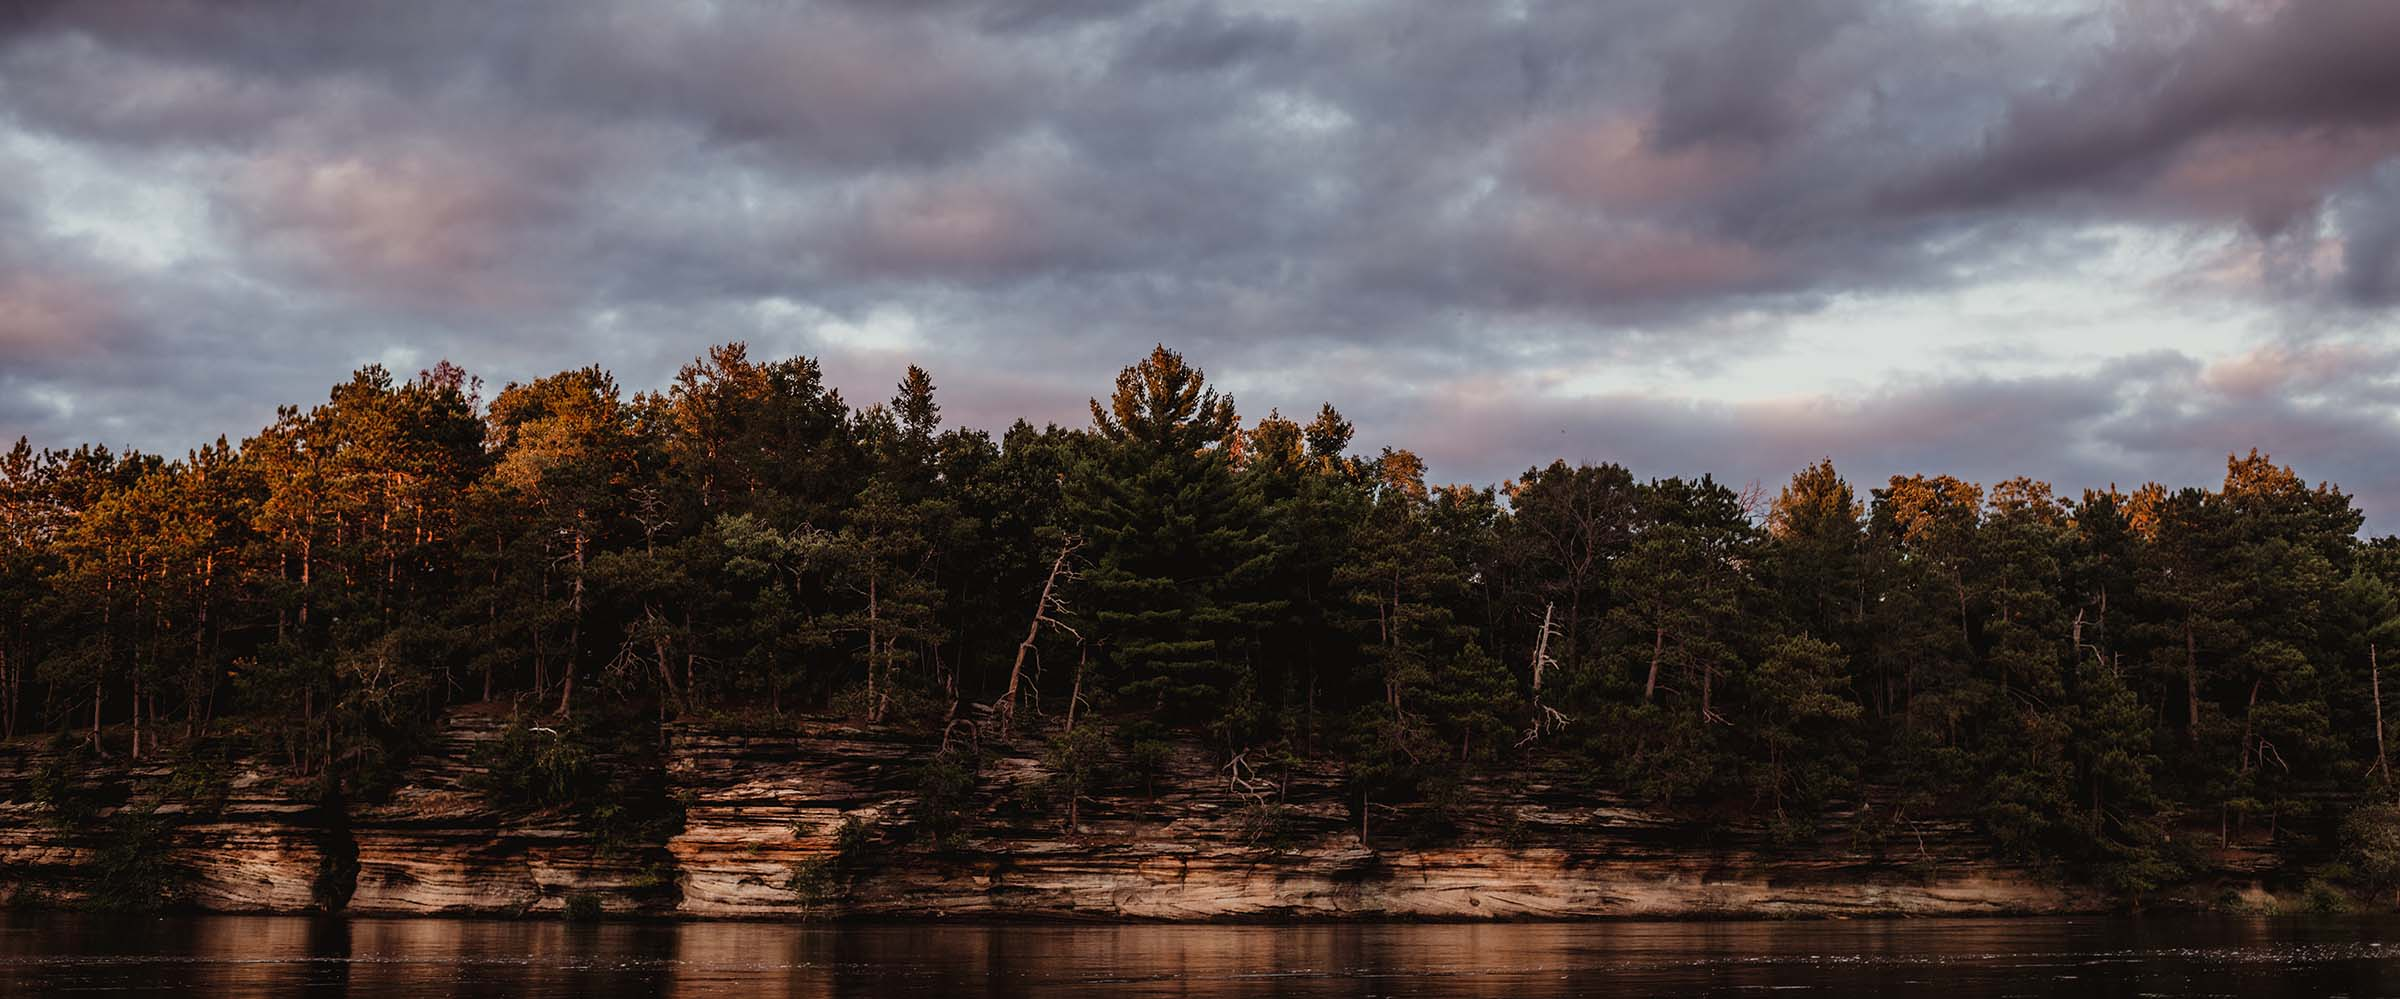 dells shoreline at sunset